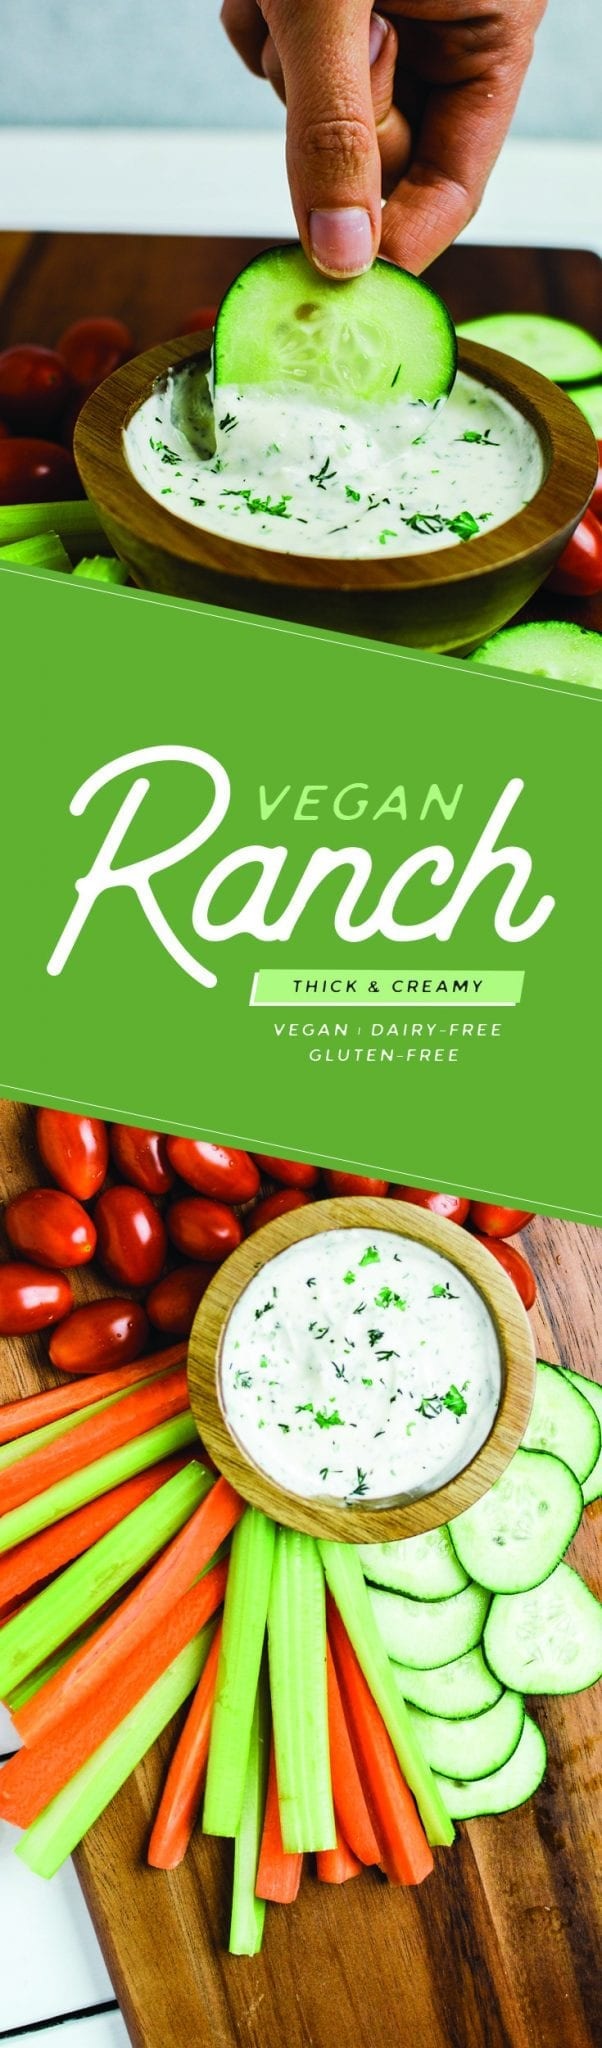 5-minute Thick and Creamy Vegan Ranch